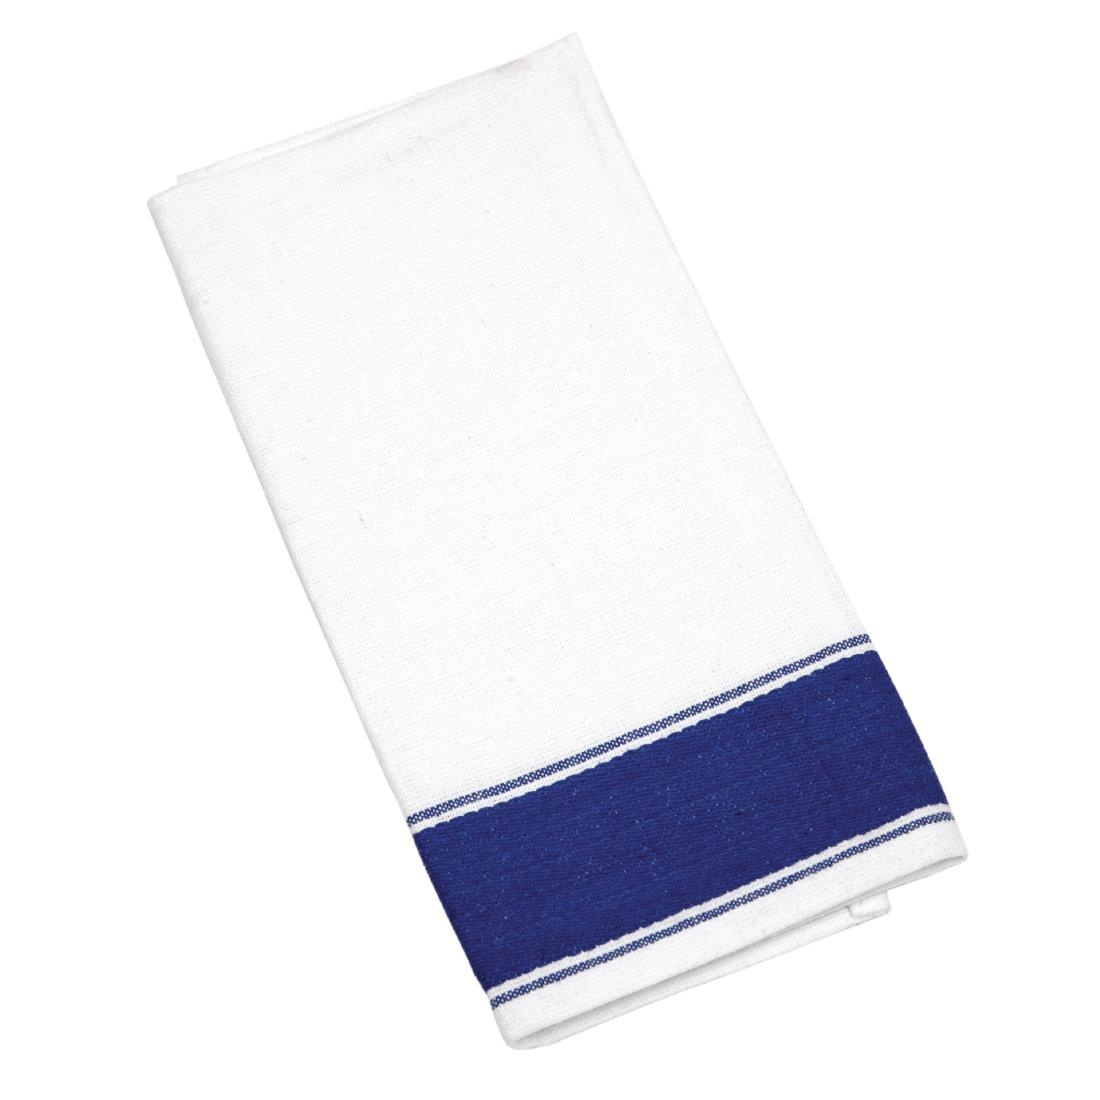 Image of Olympia Gastro Napkins with Blue Border (Pack of 10) Pack of 10